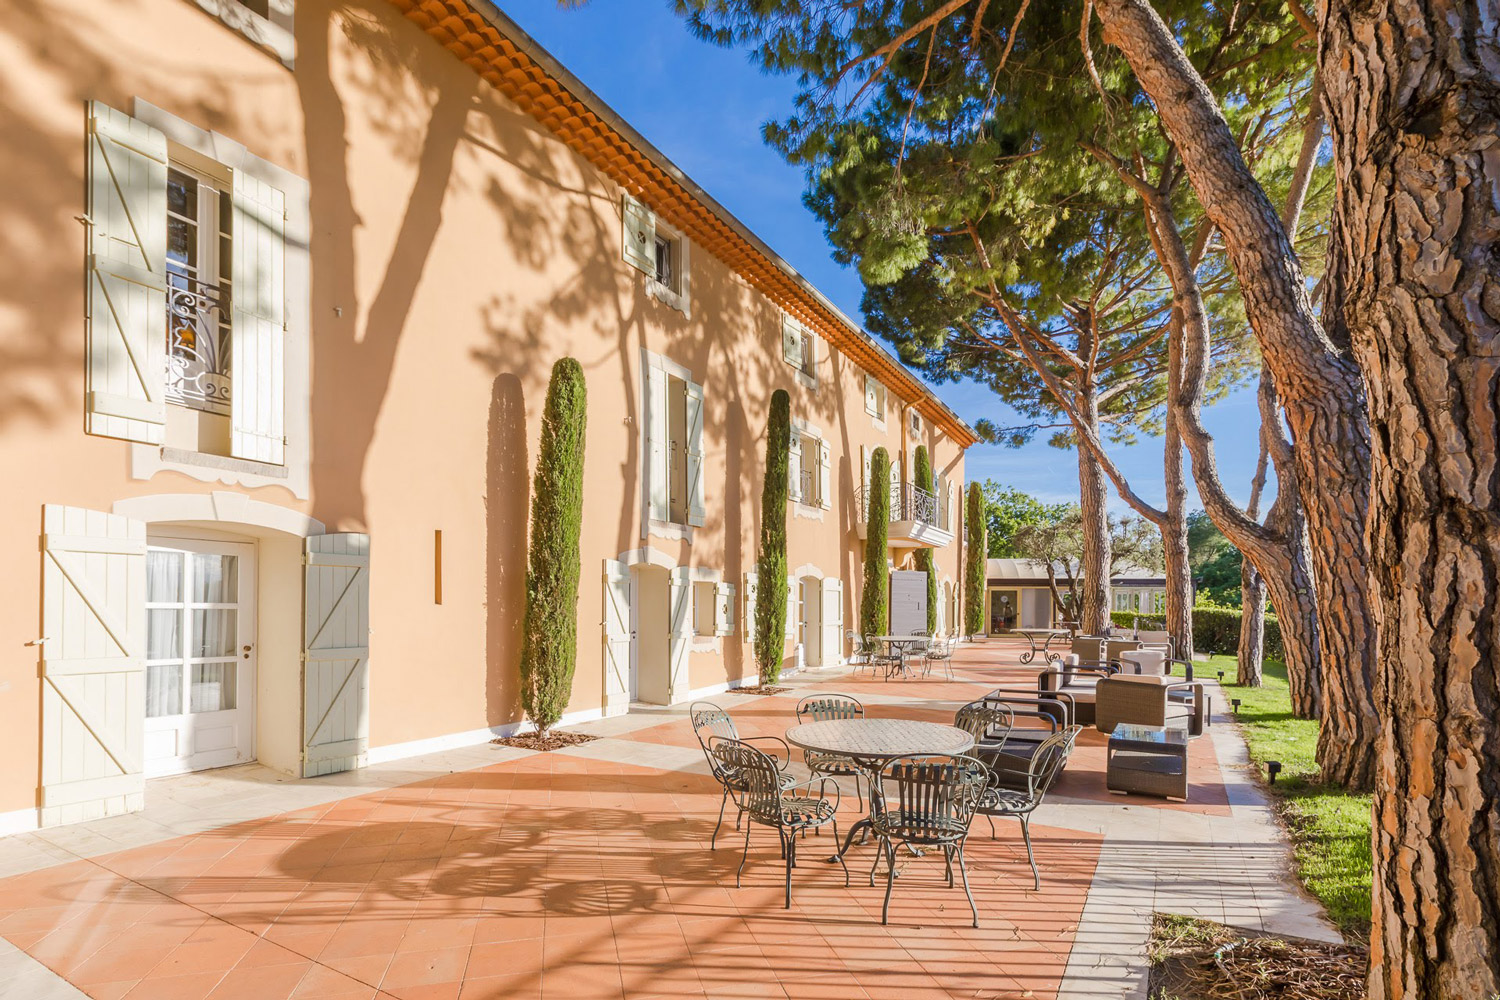 mas-candille-luxury-five-star-hotel-mougins-cote-dazur-france